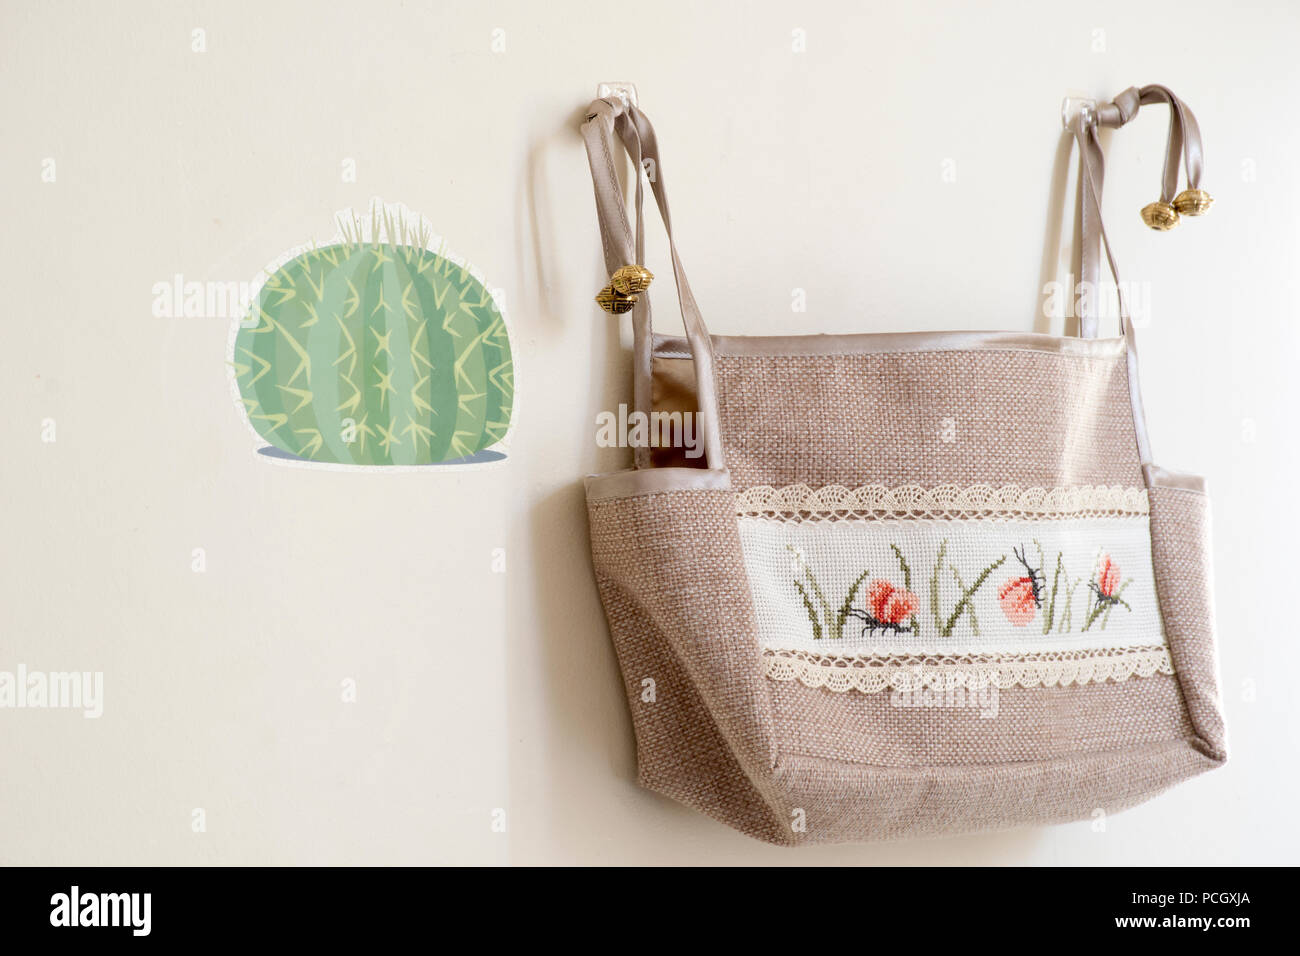 a beautiful handmade bag with a lovely embroidered pattern hung on the wall, used as a crafting bag. - Stock Image